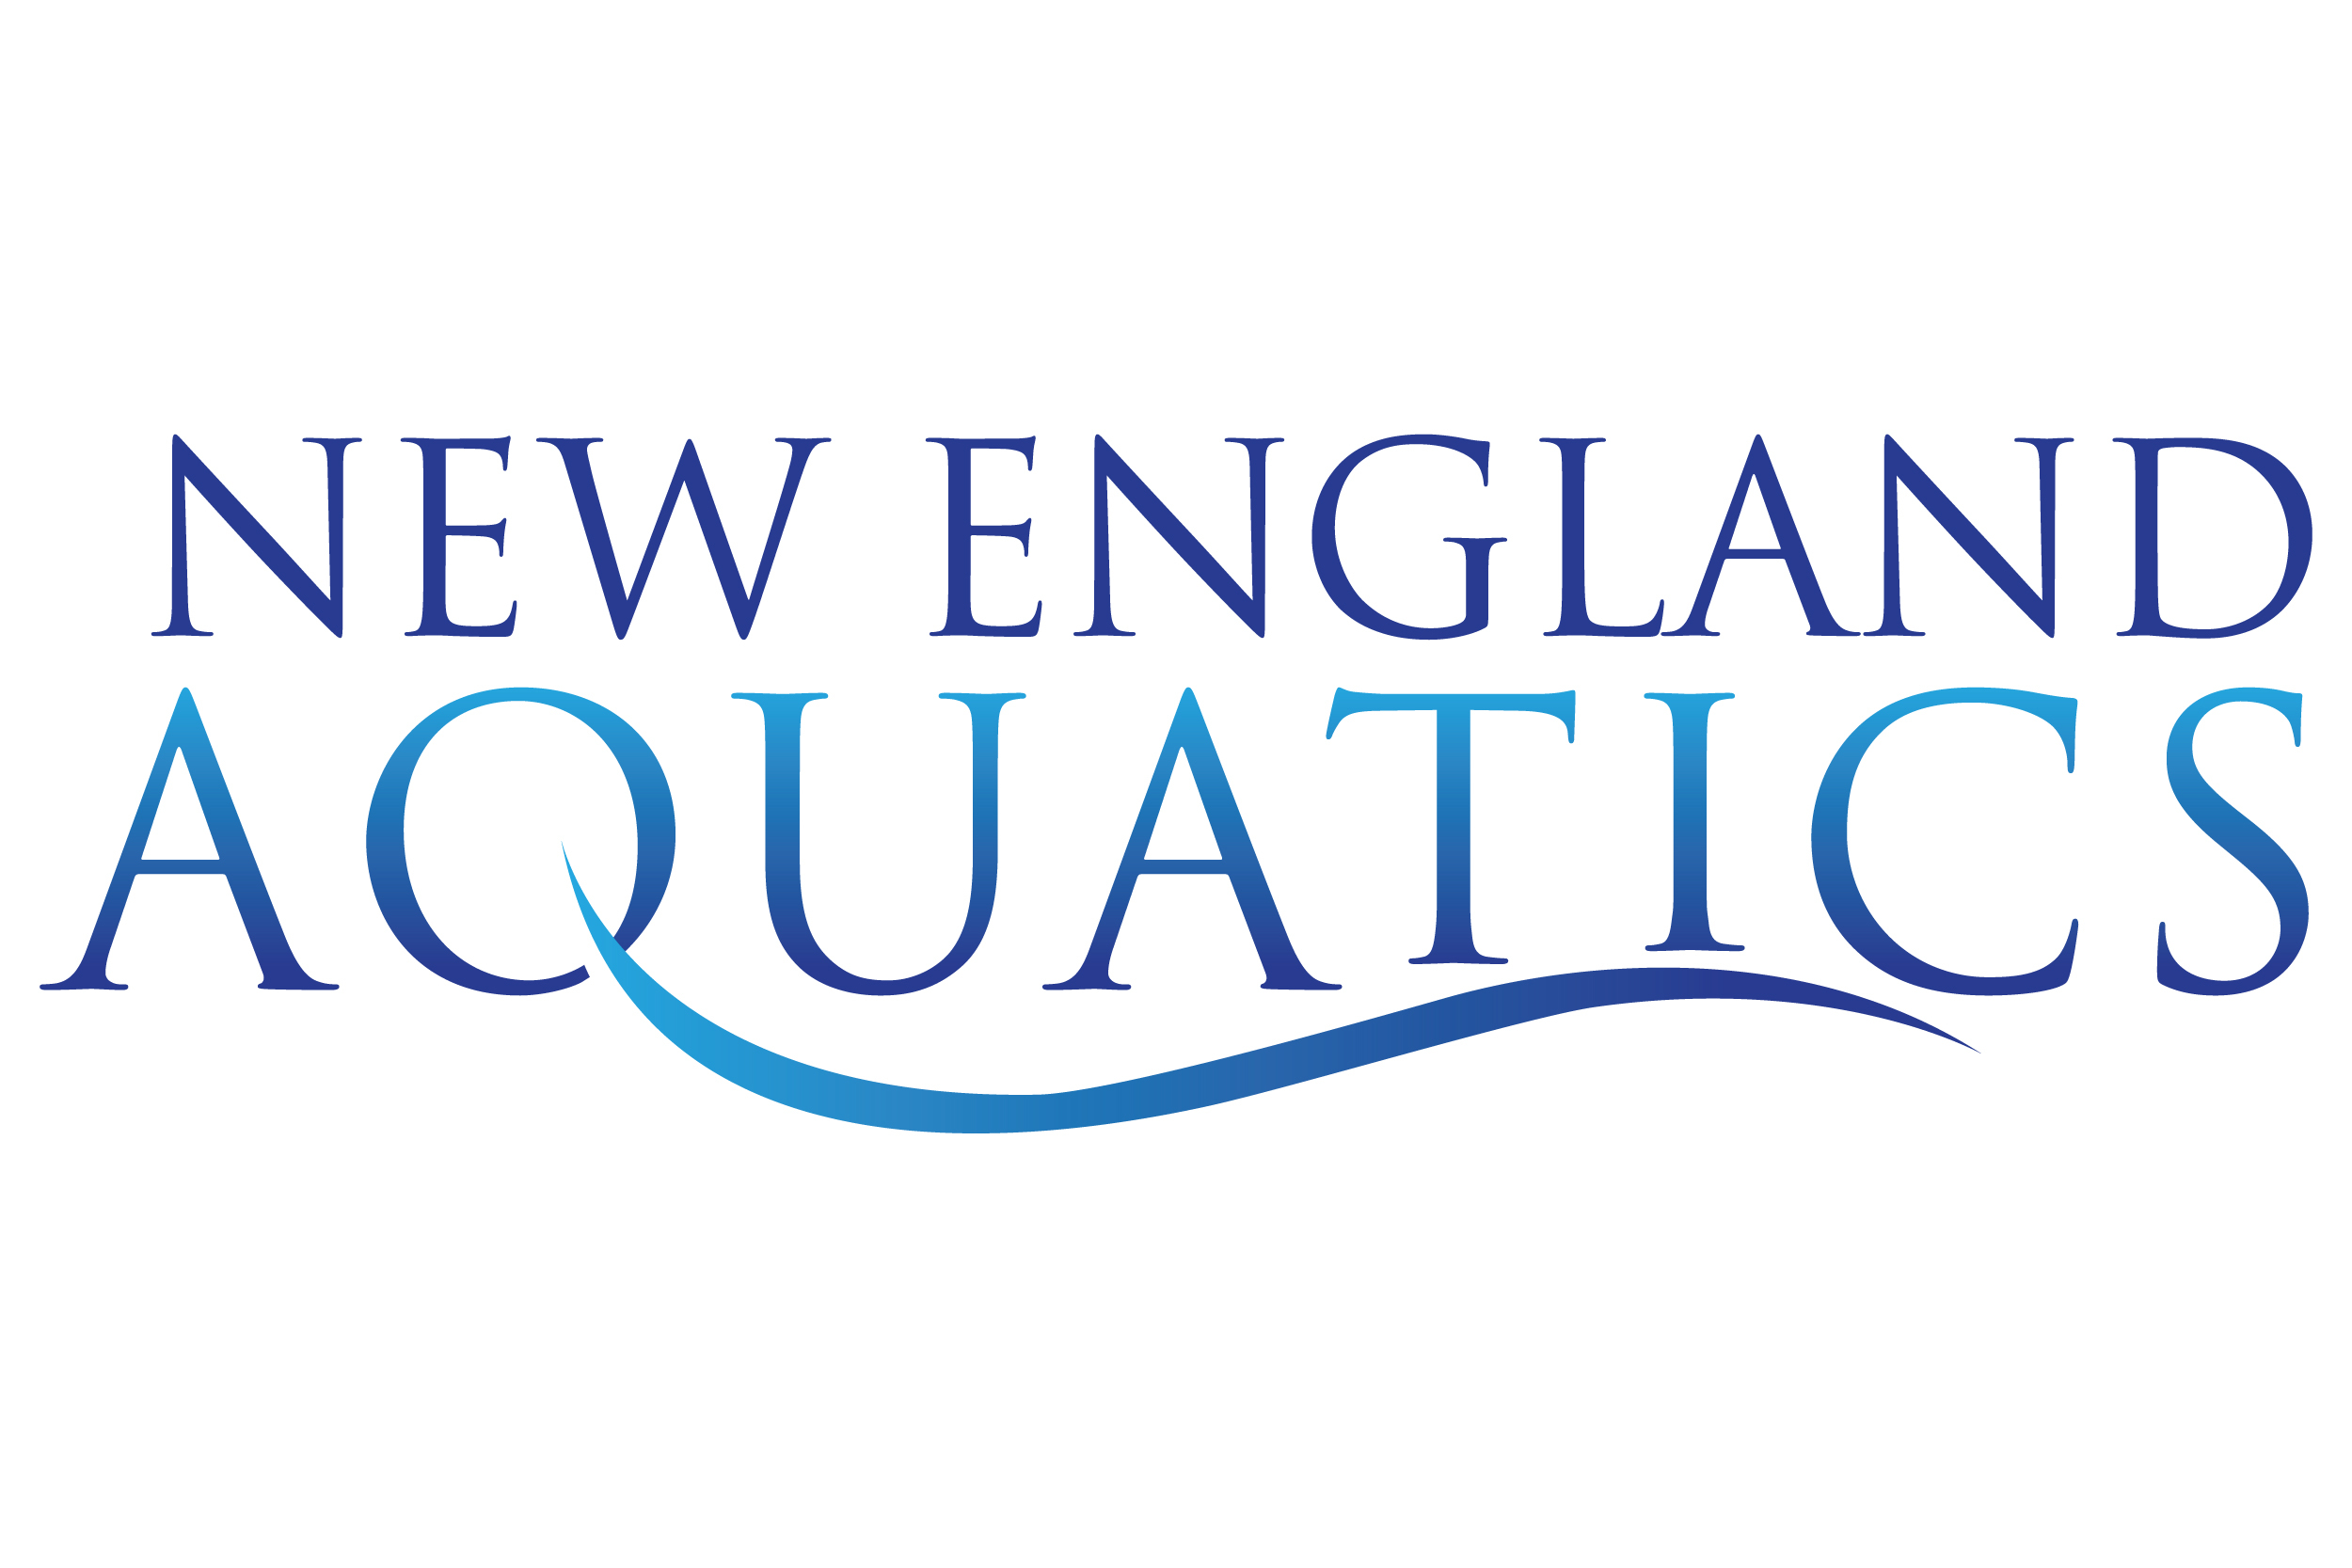 New England Aquatics